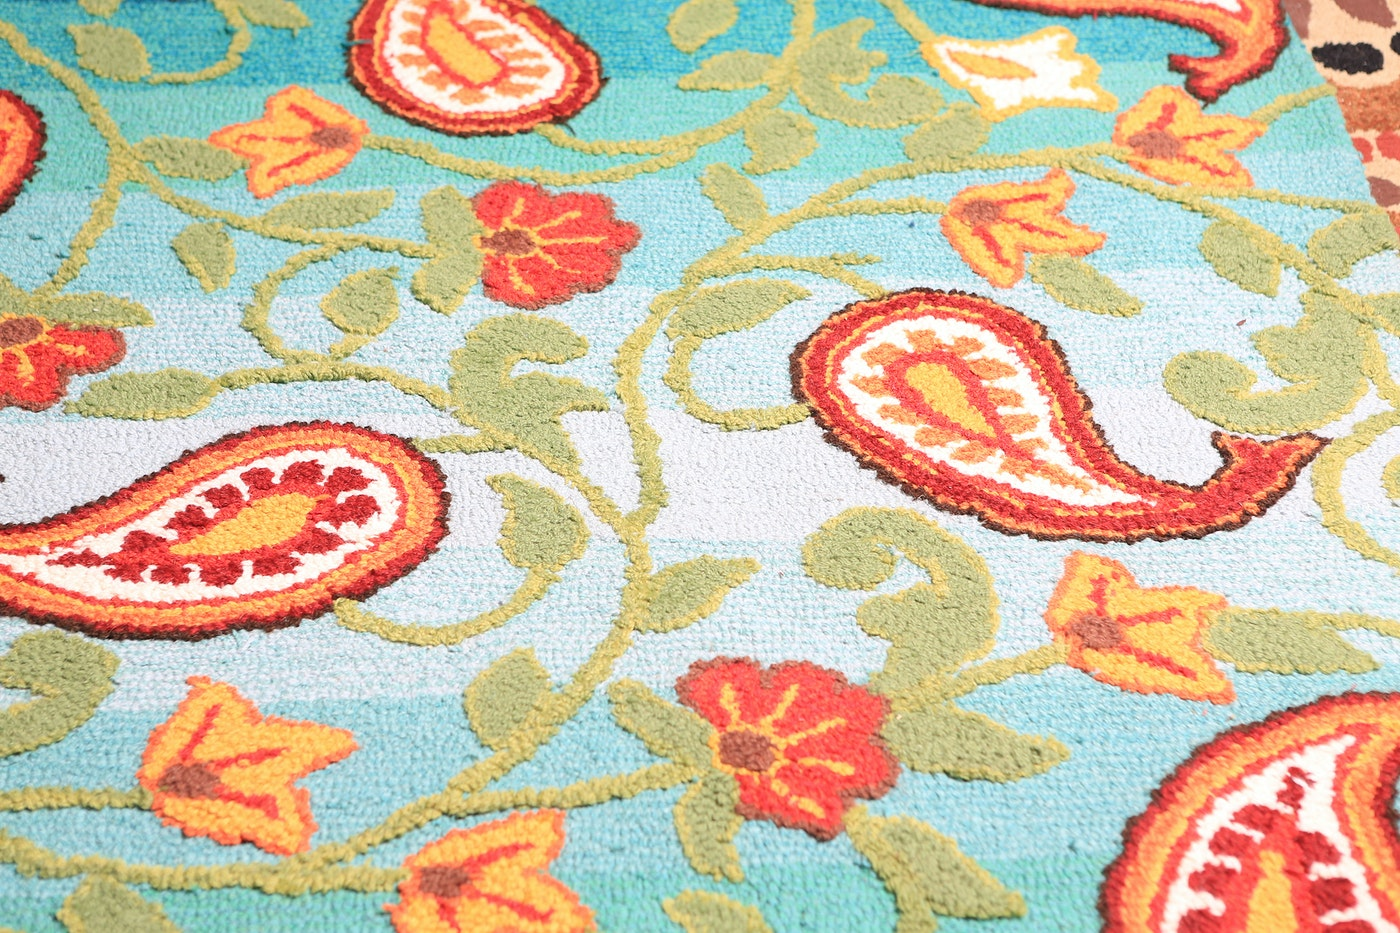 Pier 1 Imports Wool Paisley Quot Tapis Quot Area Rug Ebth